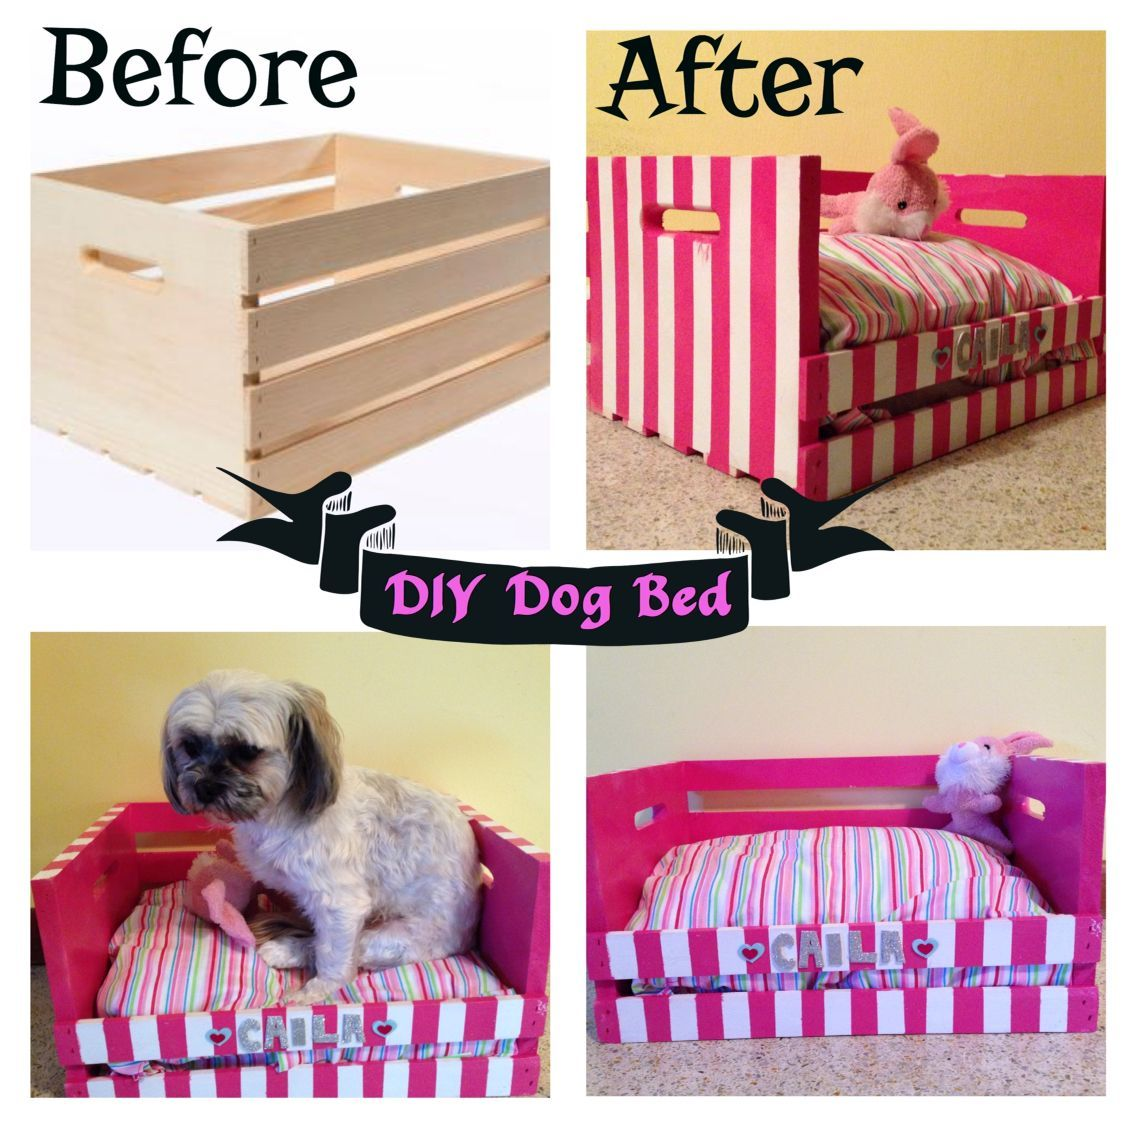 Created a Dog bed for my Shih Tzu/Poodle. Made from a